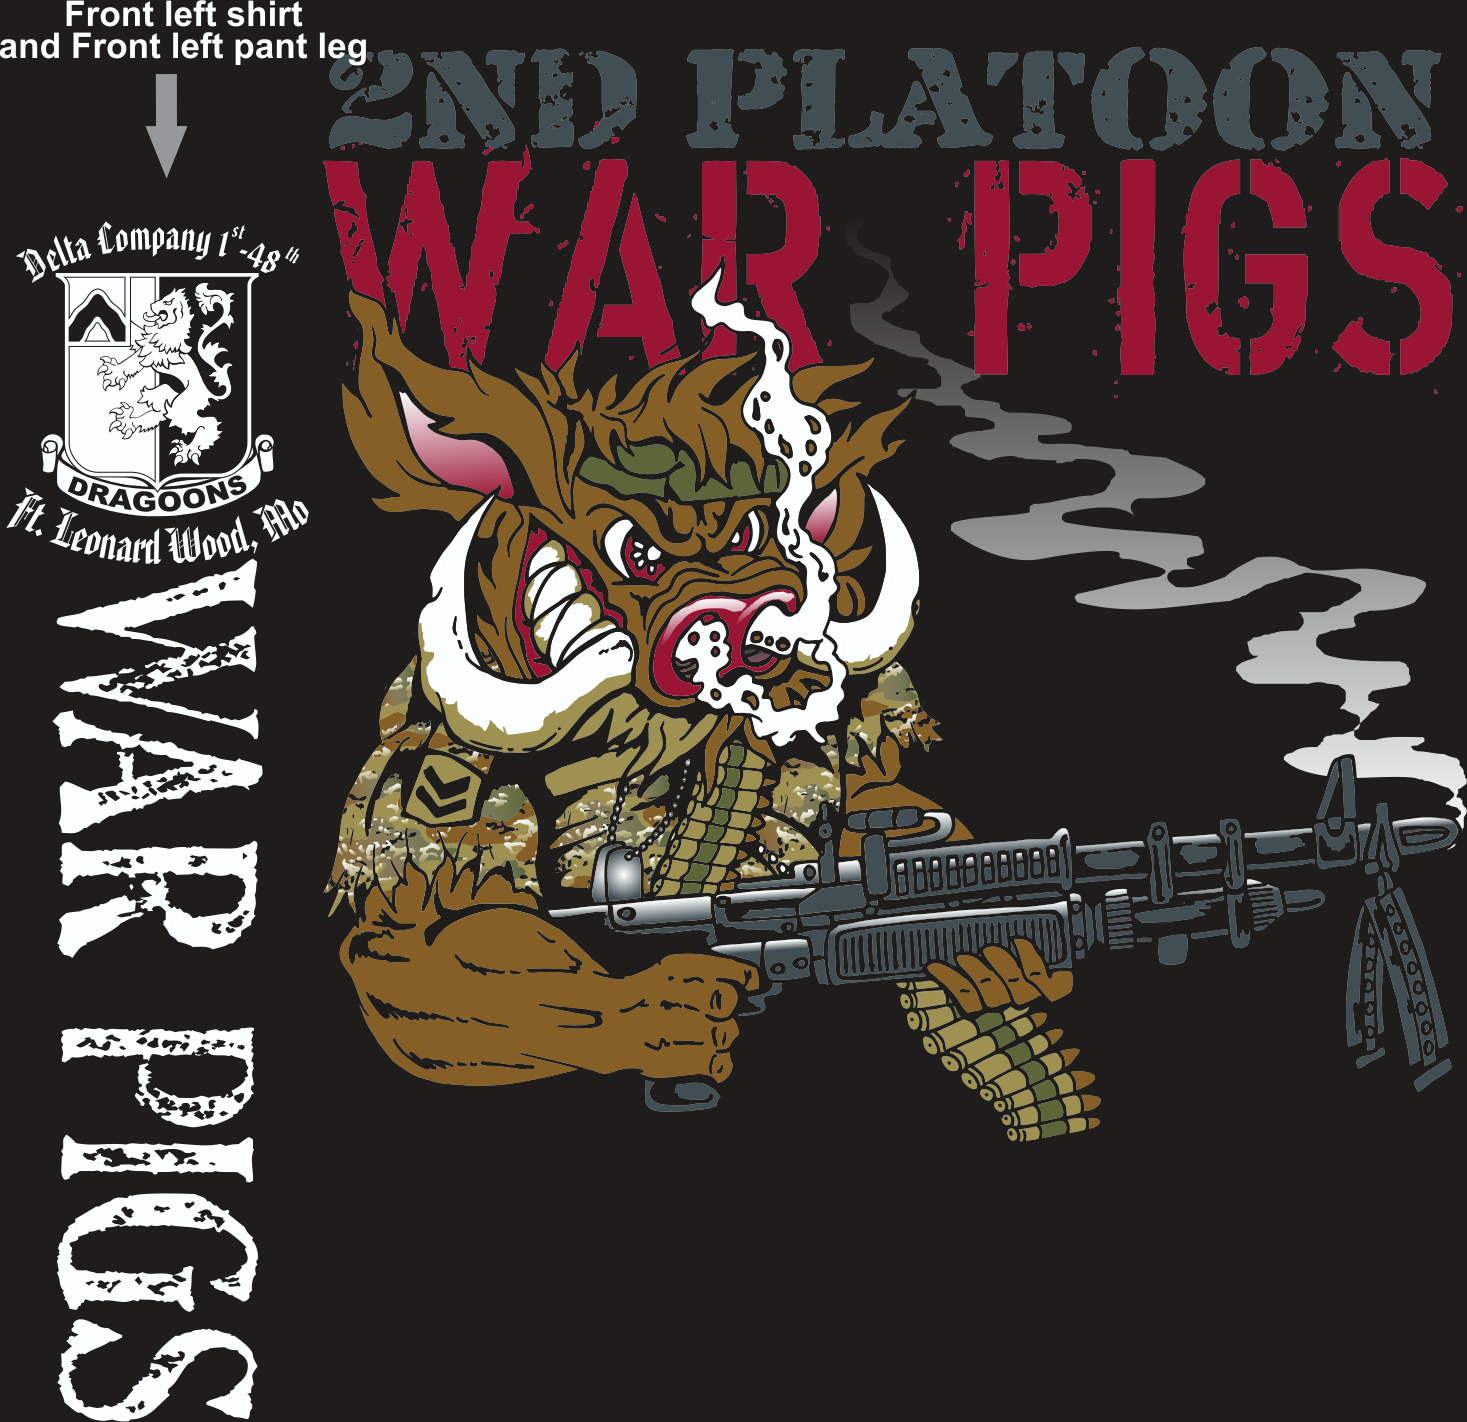 DELTA 1-48 WAR PIGS GRADUATING DAY 11-25-2015 digital